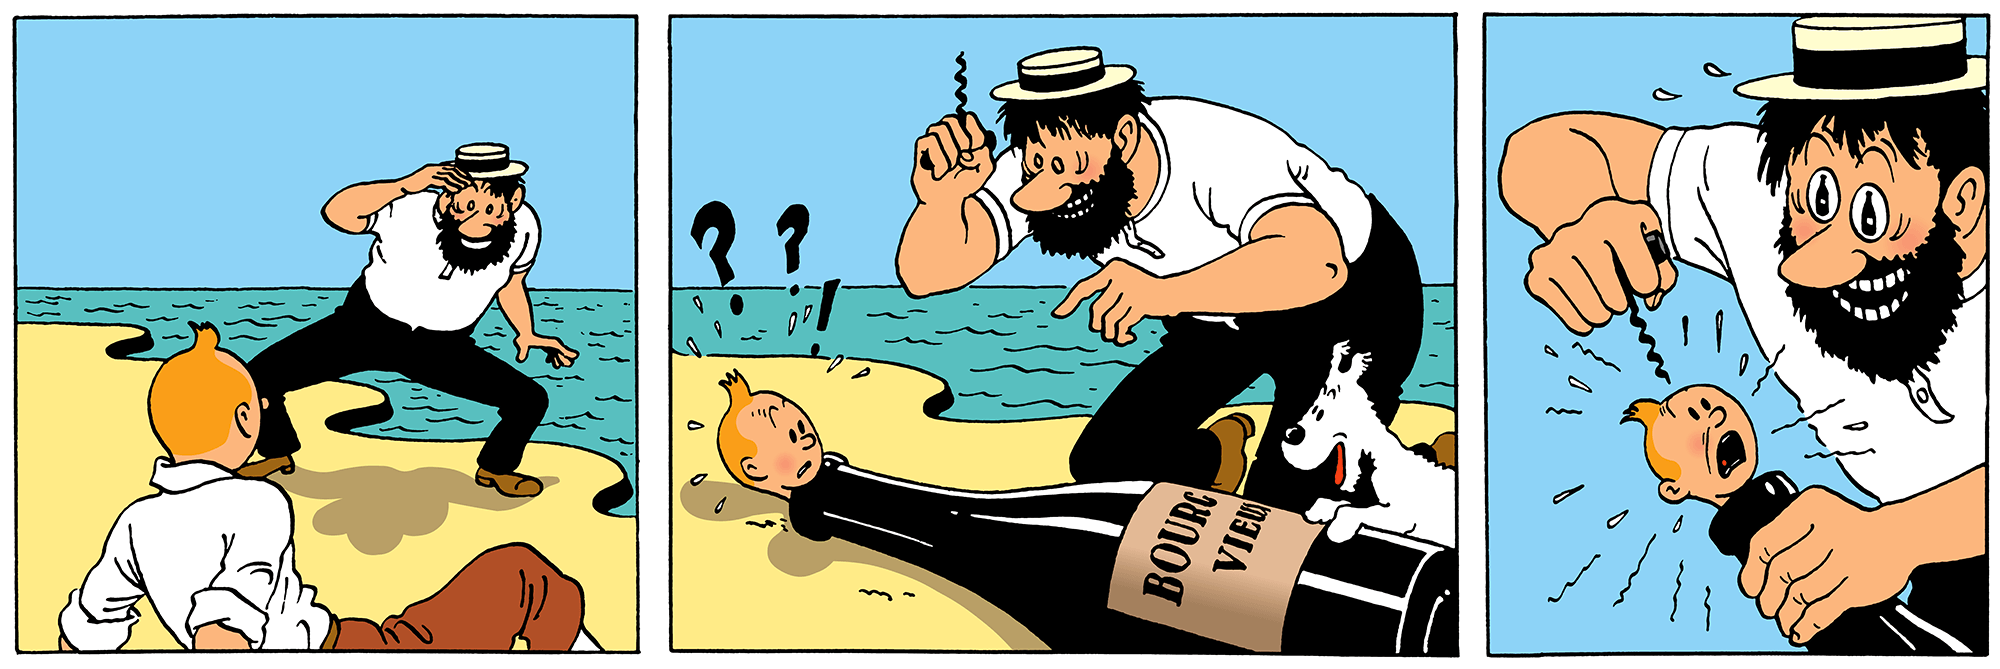 Tintin - The Adventures of Tintin - The Crab with the Golden Claws - Captain Haddock